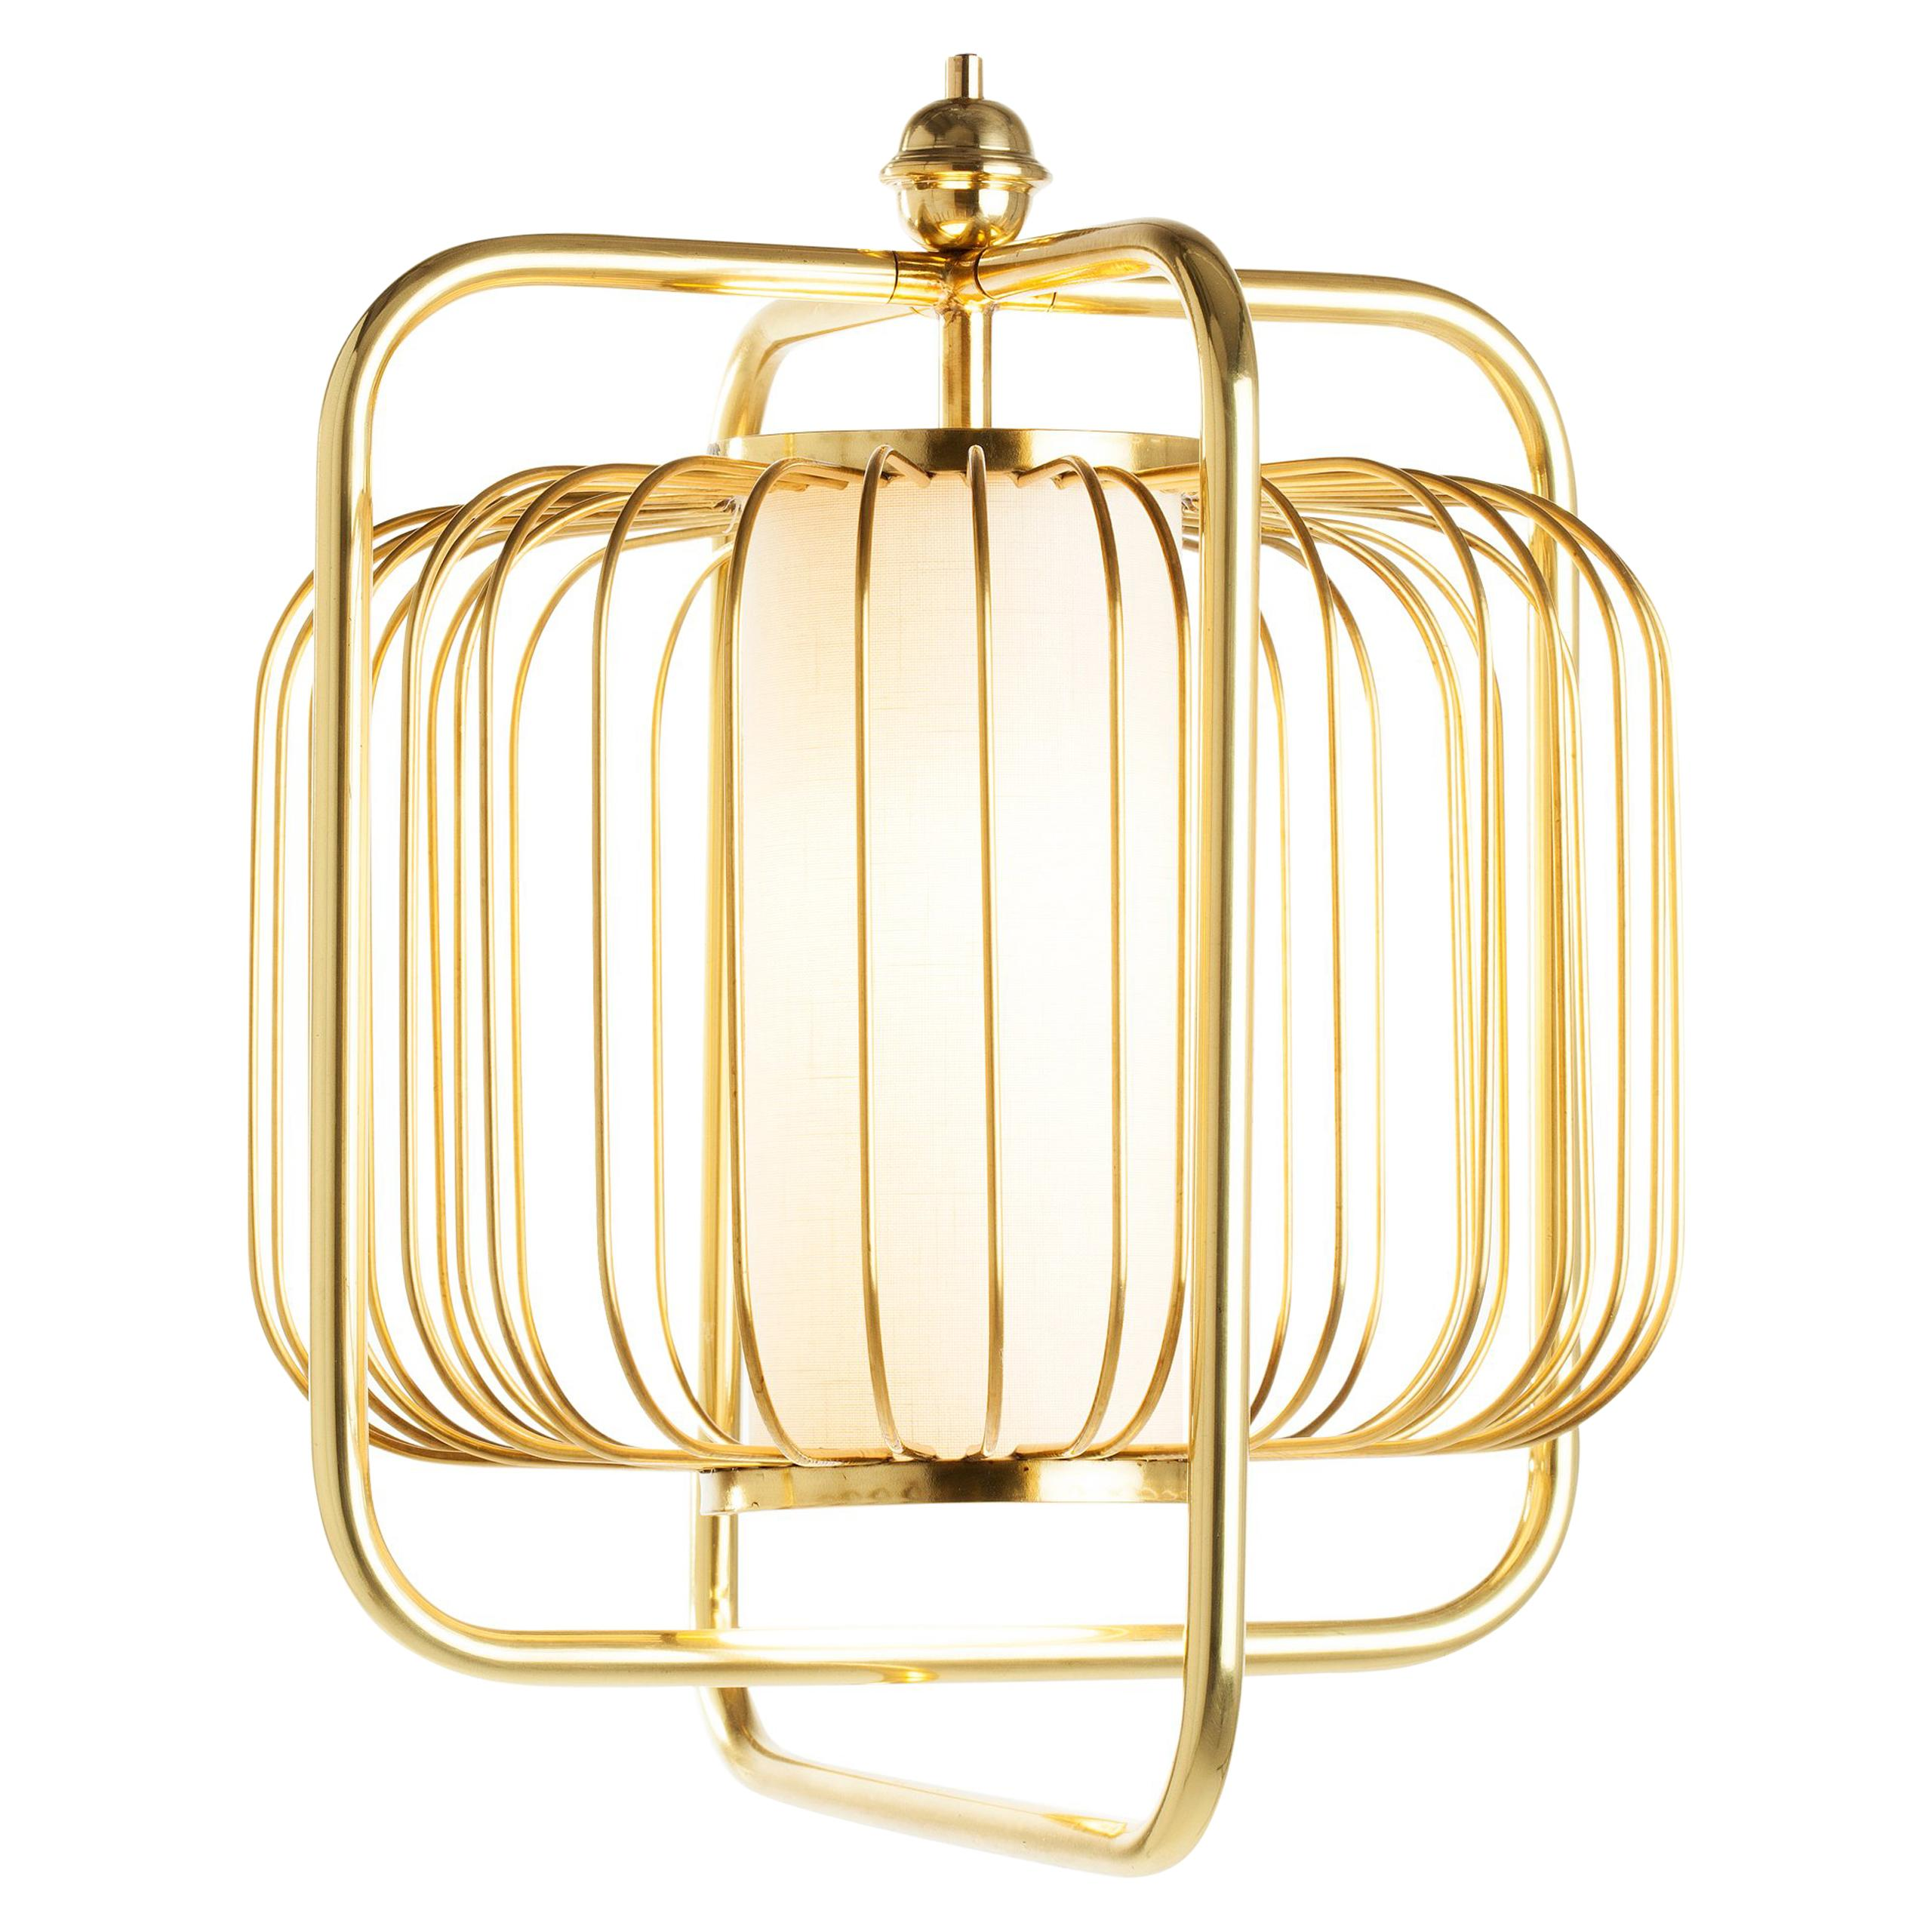 Contemporary Art Deco inspired Jules III Pendant Lamp in Brass and Linen